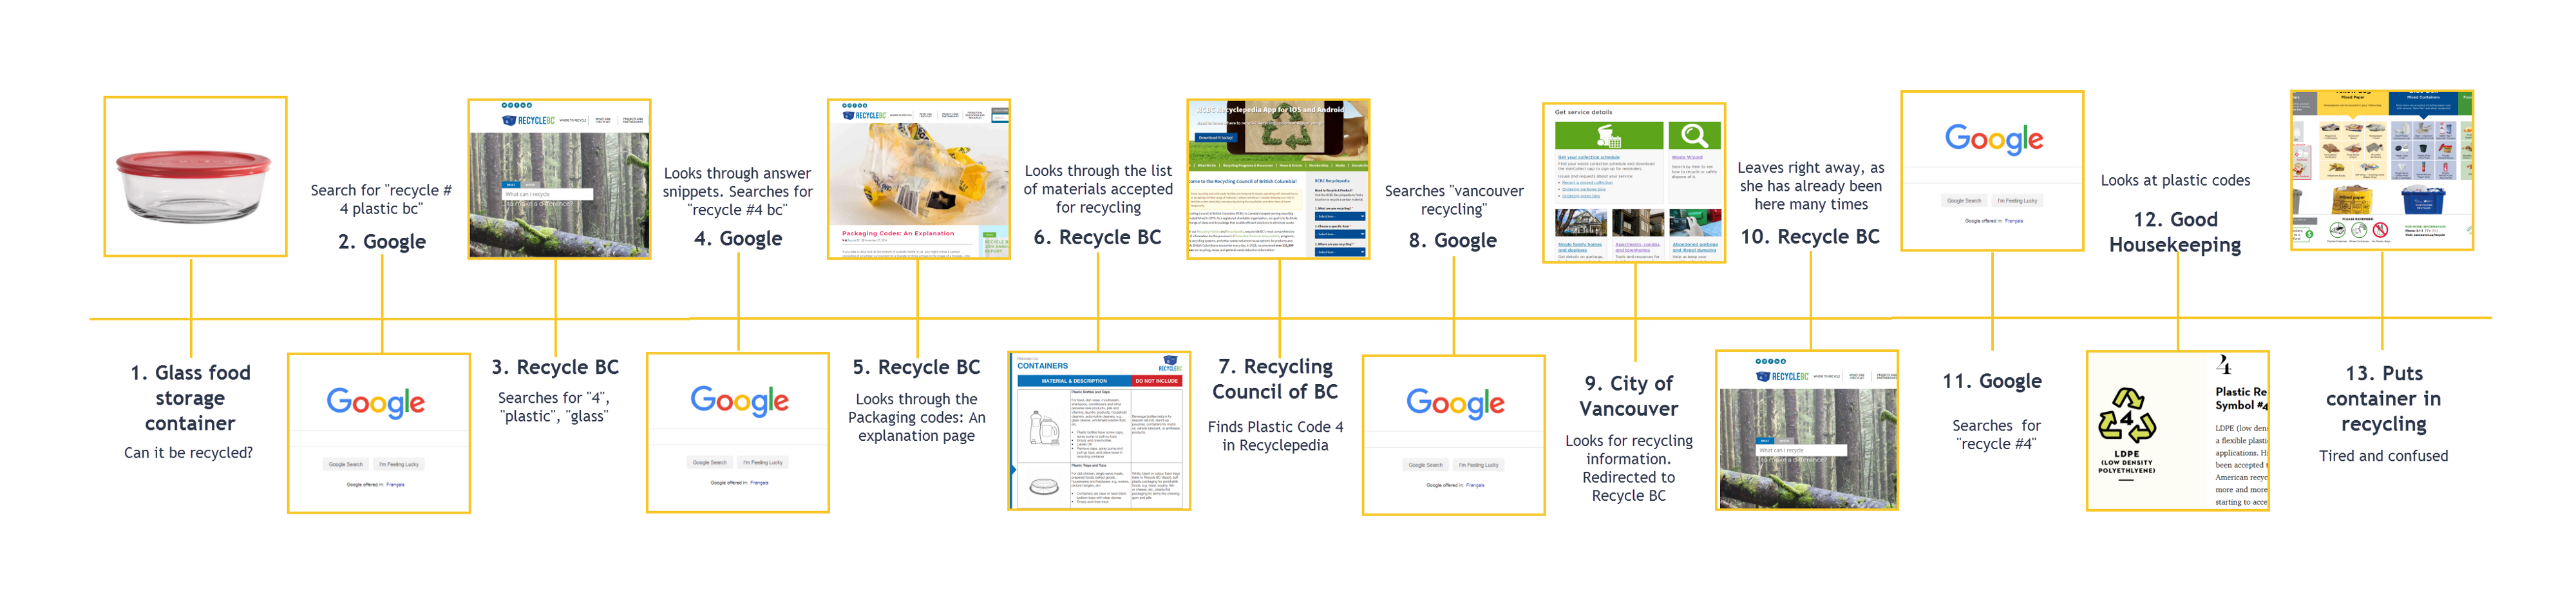 Journey map of Kate's recycling experience.